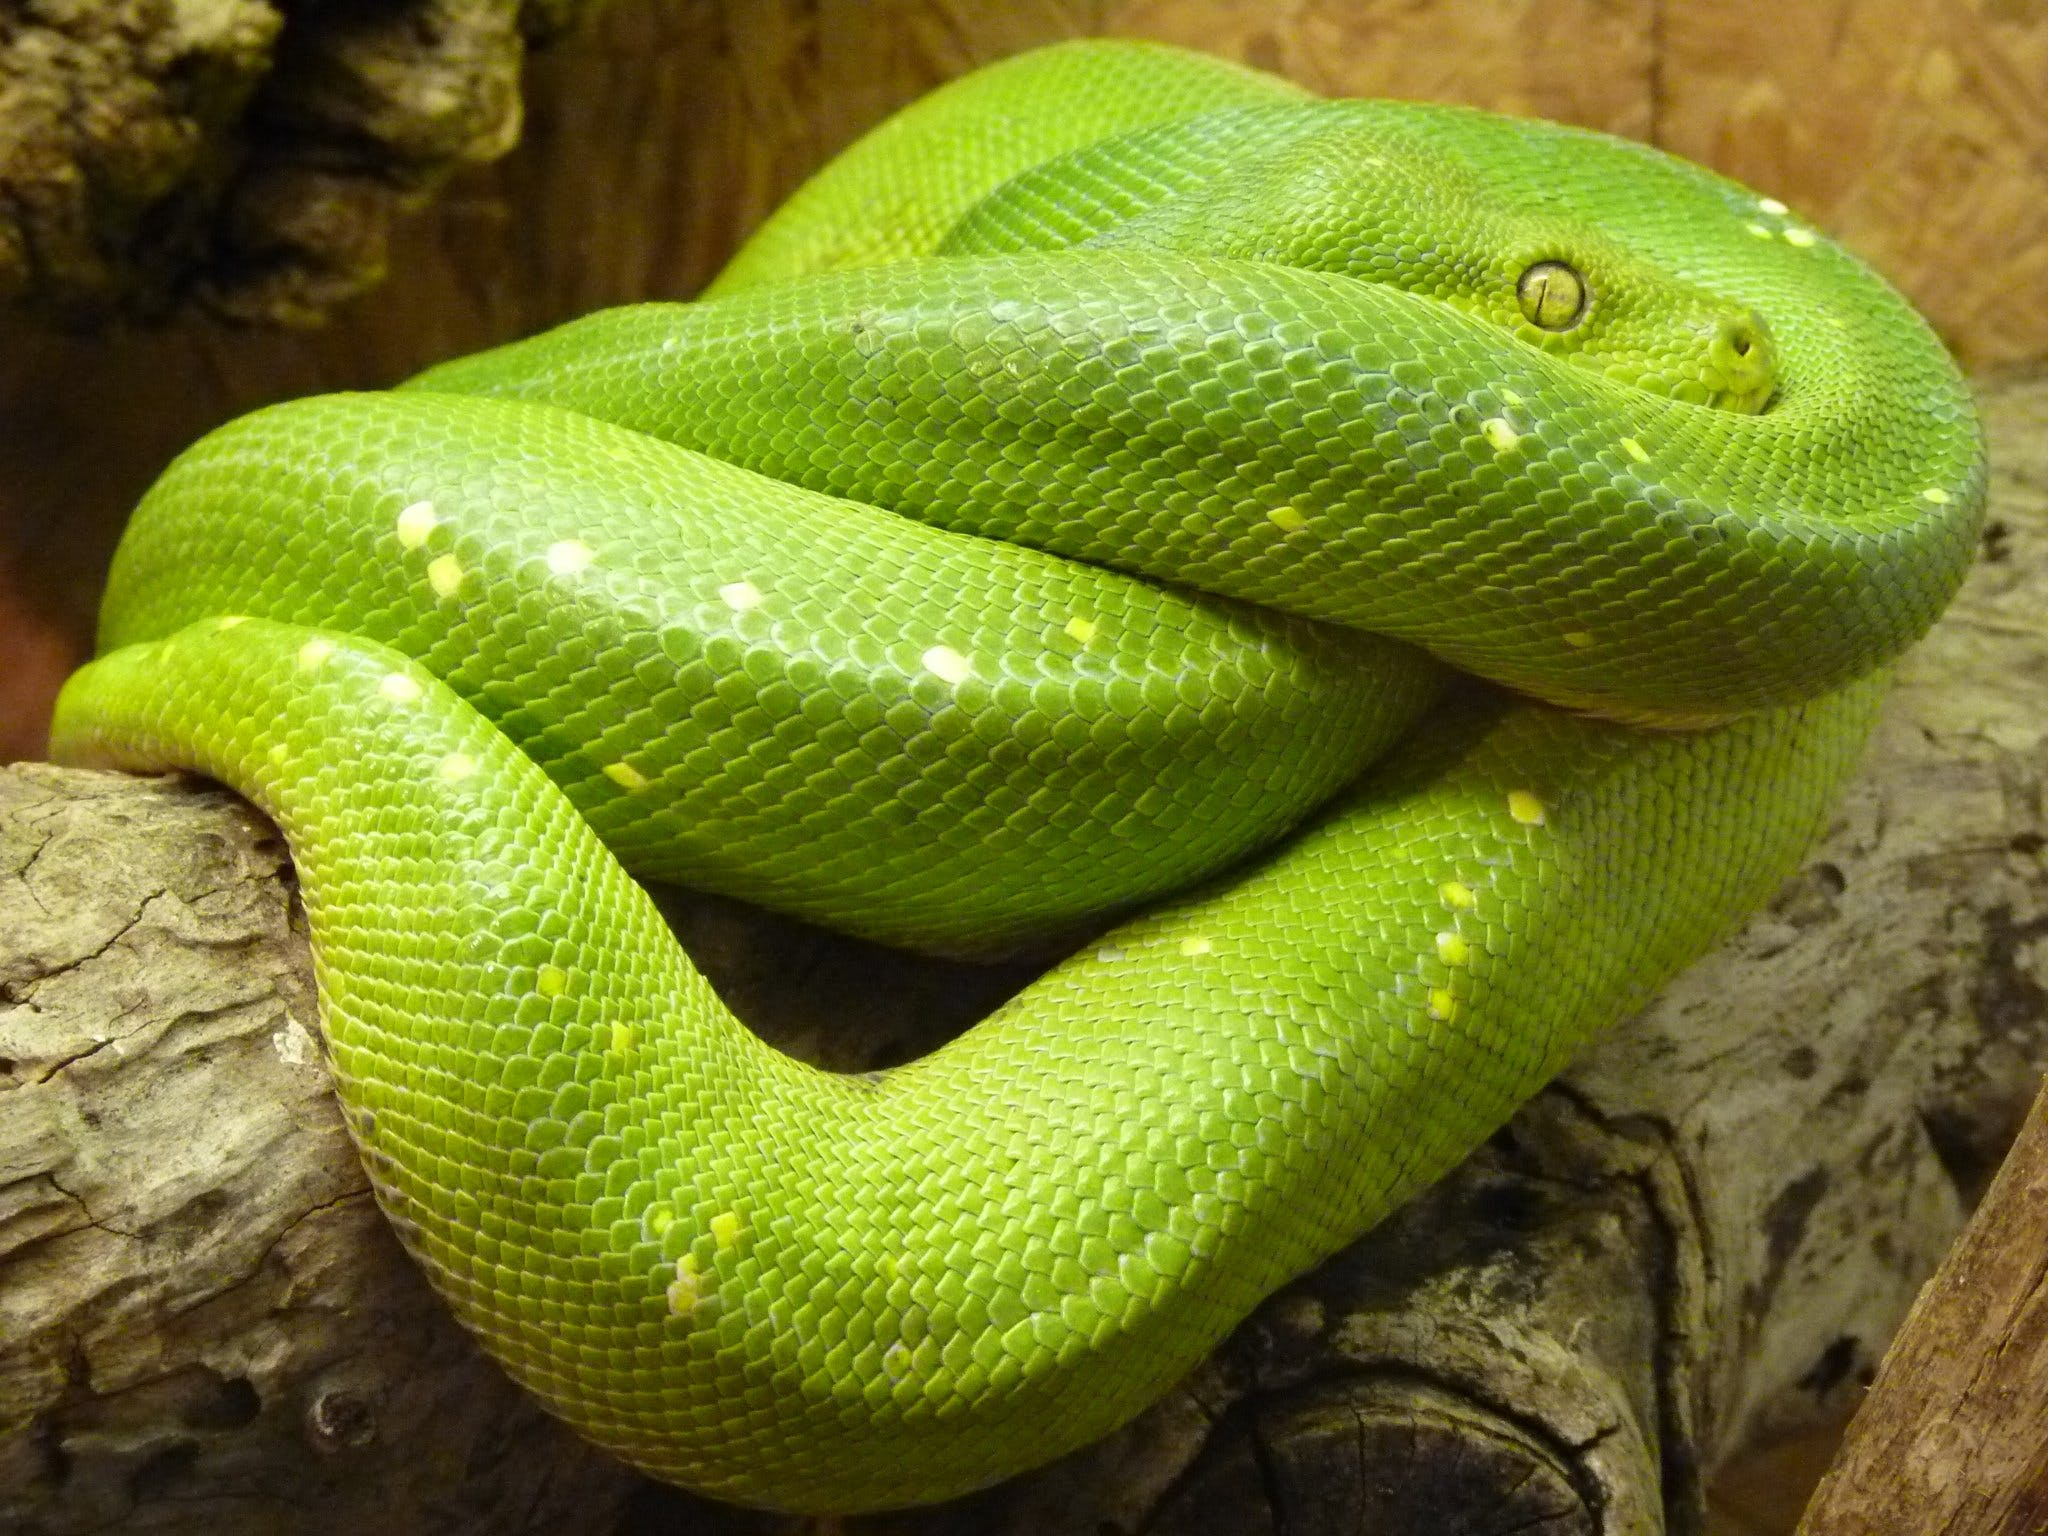 Free stock photo of animal, green, reptile, snake